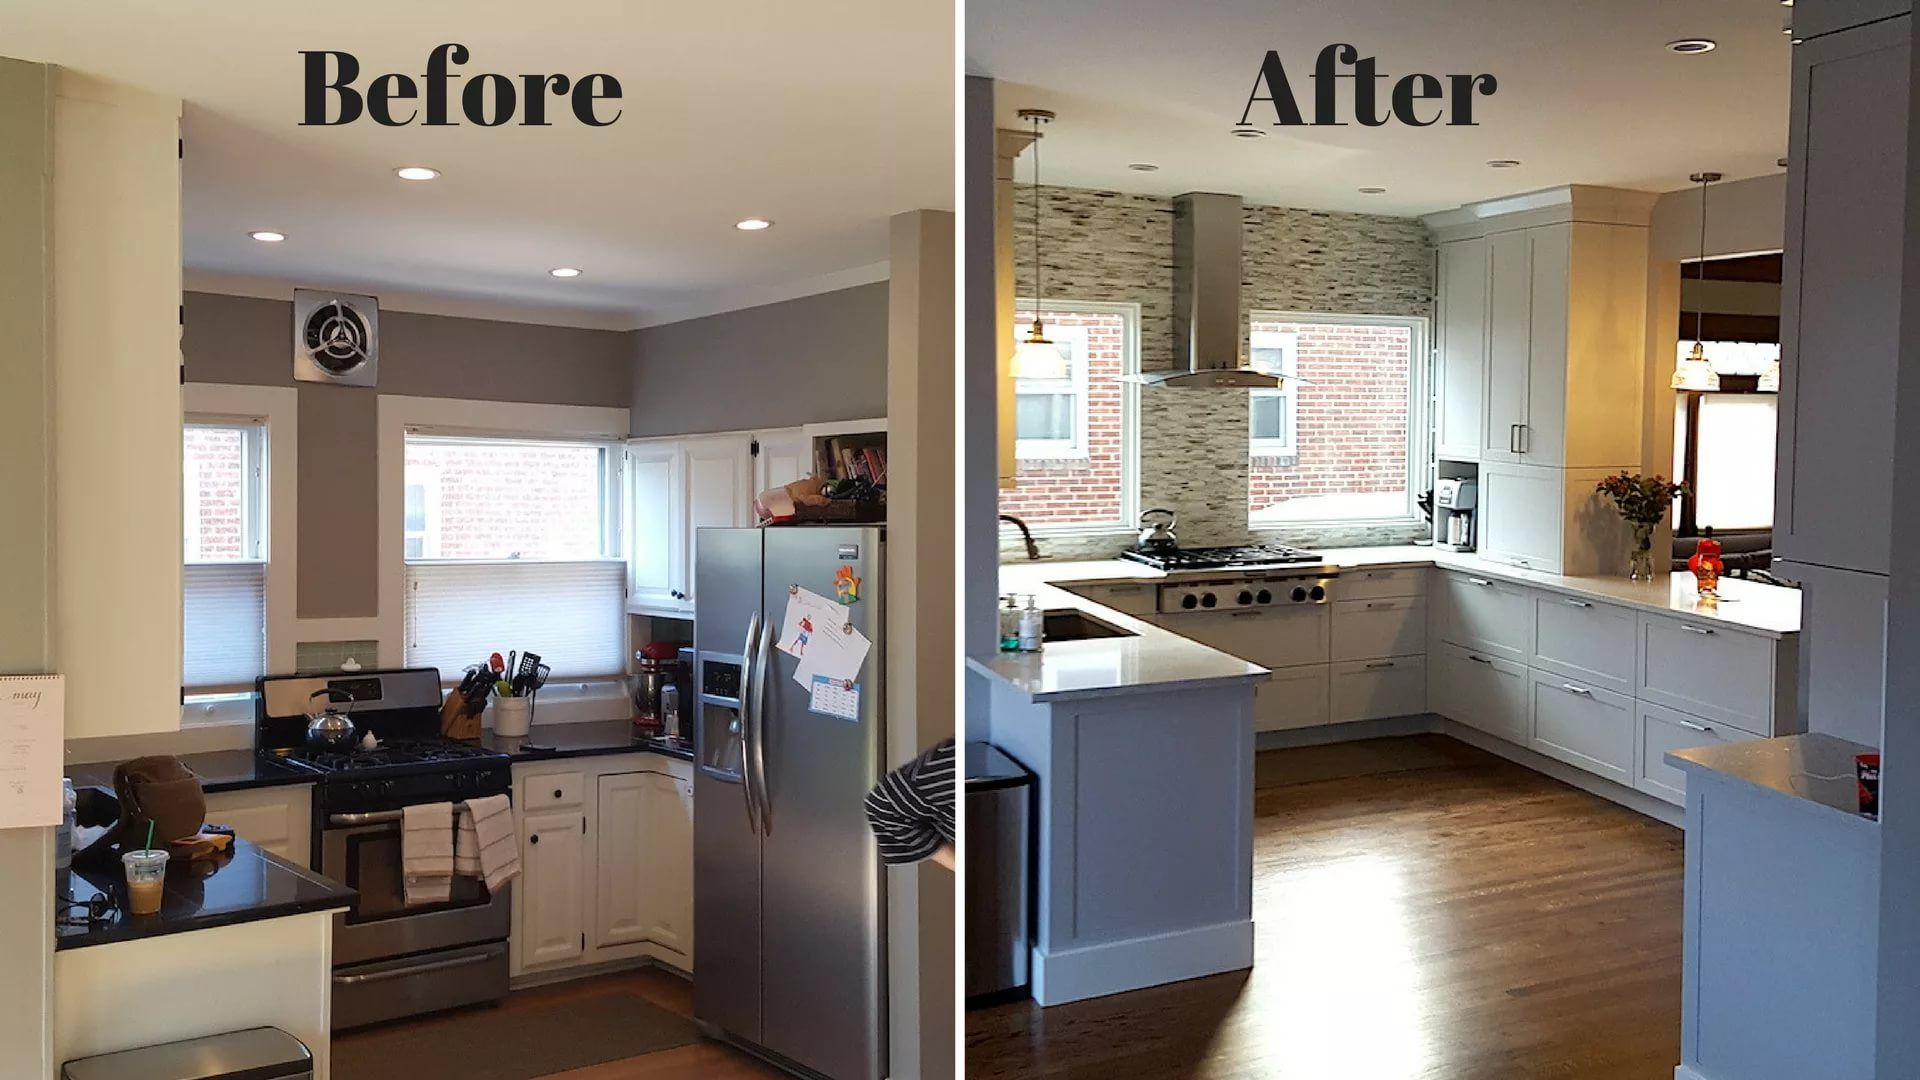 30 Small Kitchen Remodel Ideas Before And After 2019 Trend Kitchen Design Small Kitchen Remodel Before And After Small Kitchen Renovations